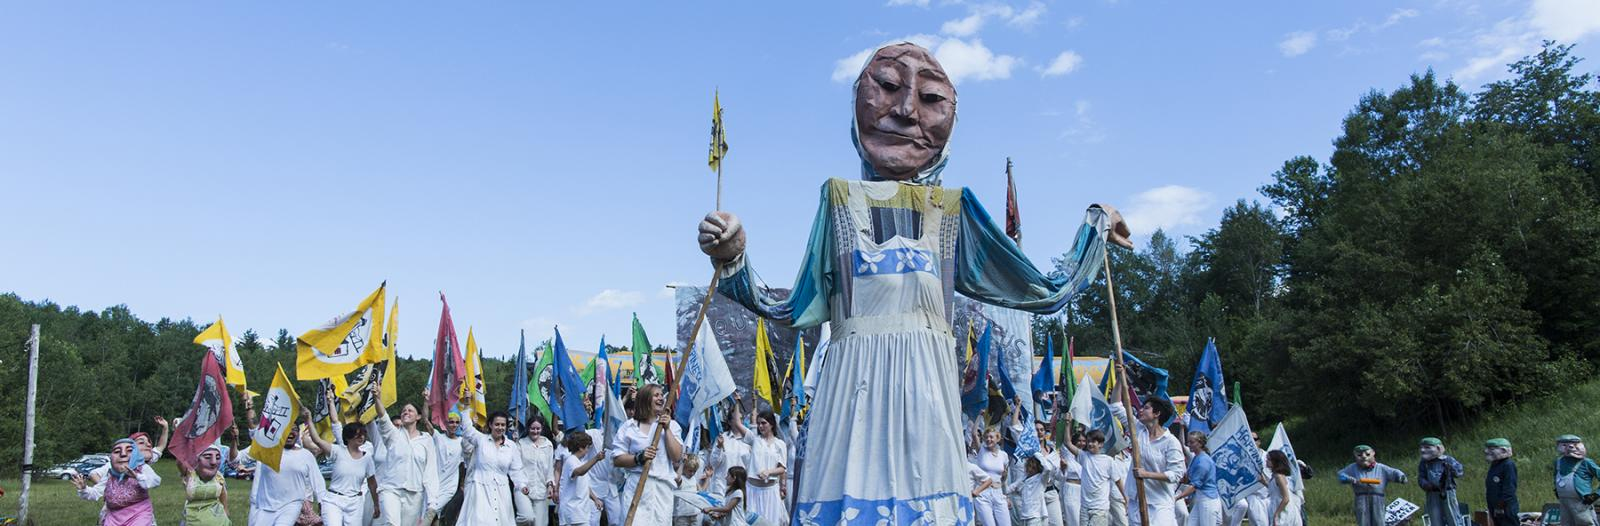 Large puppet leads crowd in scene from Bread and Puppet's The Grasshopper Rebellion